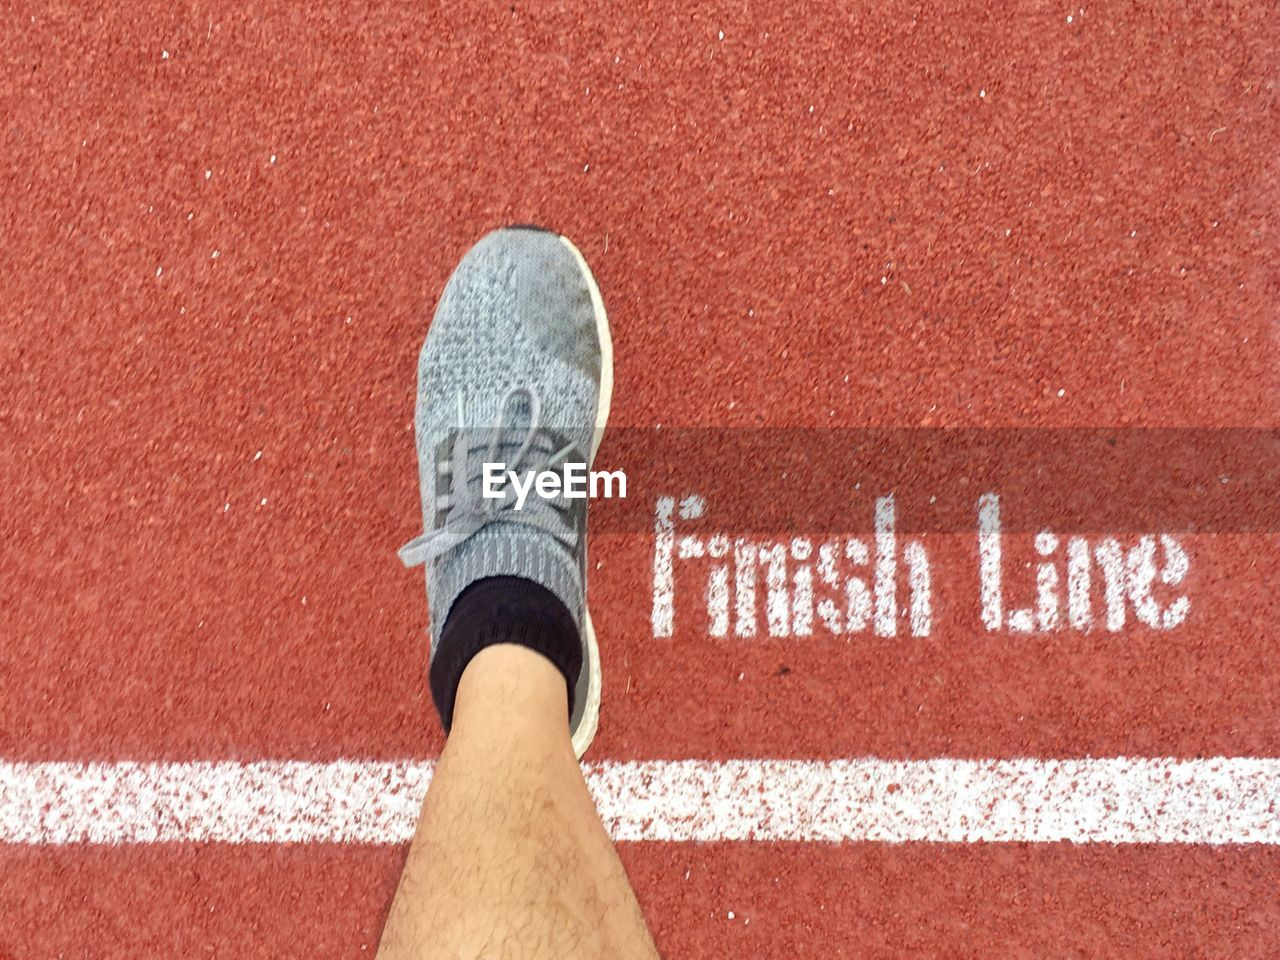 sport, running track, track and field, human body part, one person, body part, shoe, human leg, low section, day, competition, sports shoe, limb, starting line, standing, red, track event, sign, running, human limb, human foot, dividing line